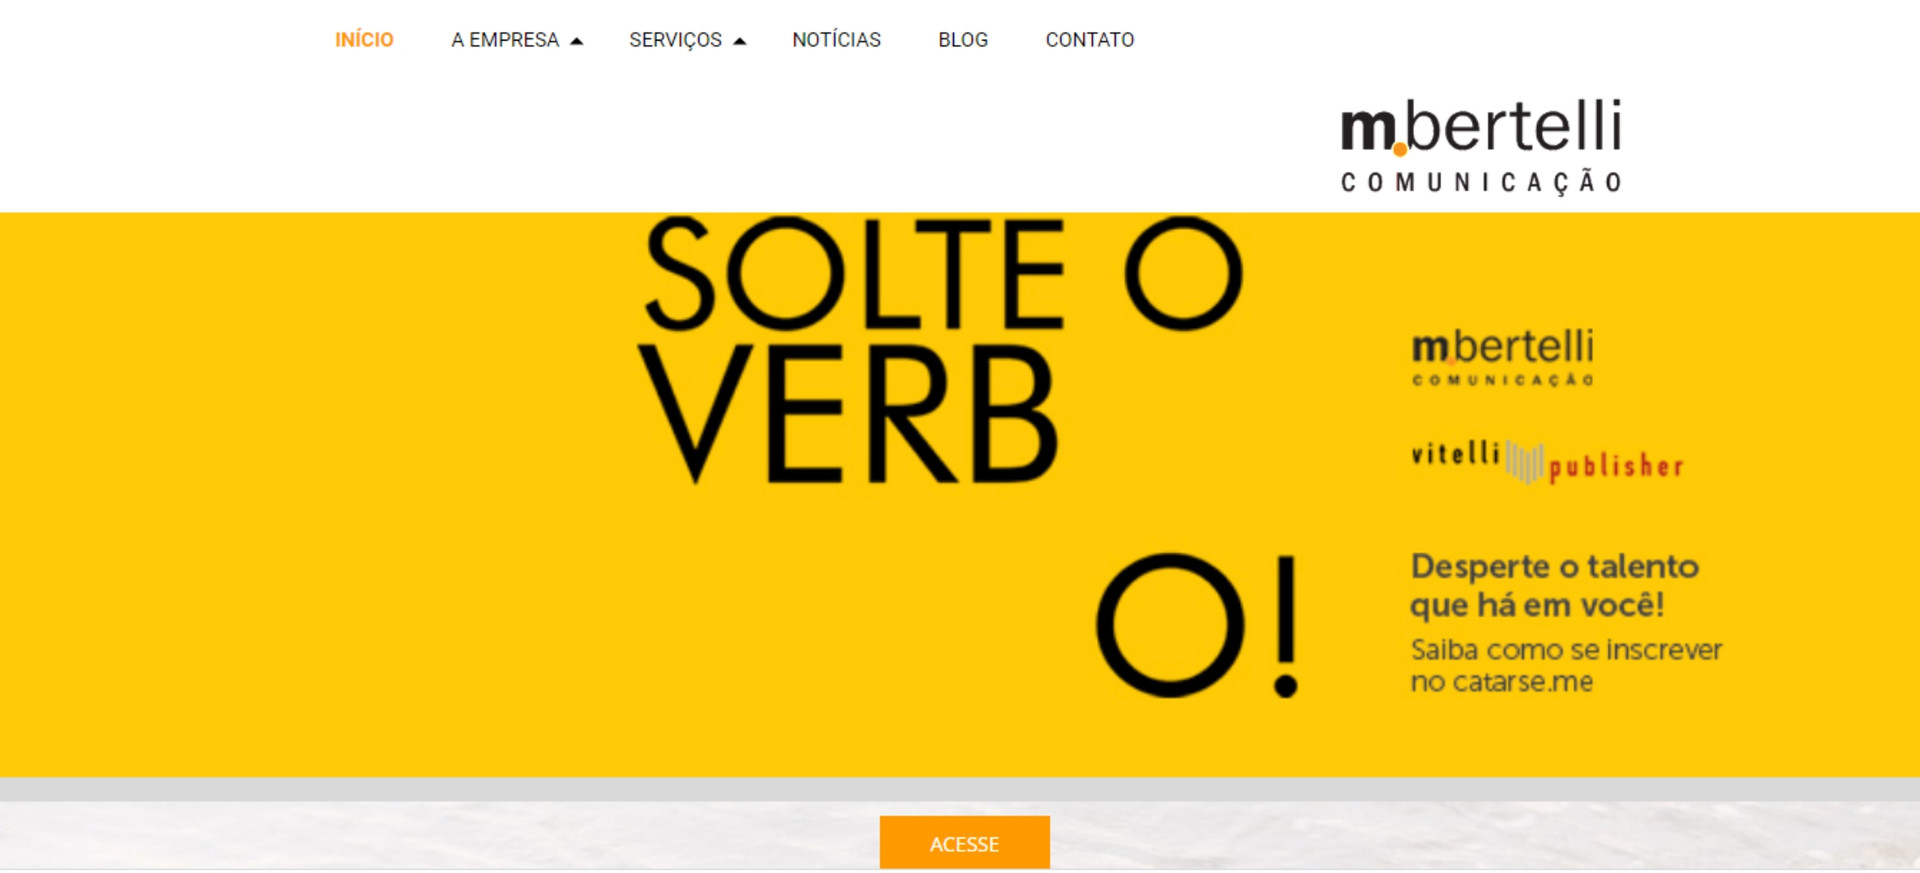 Site MBertelli - home page